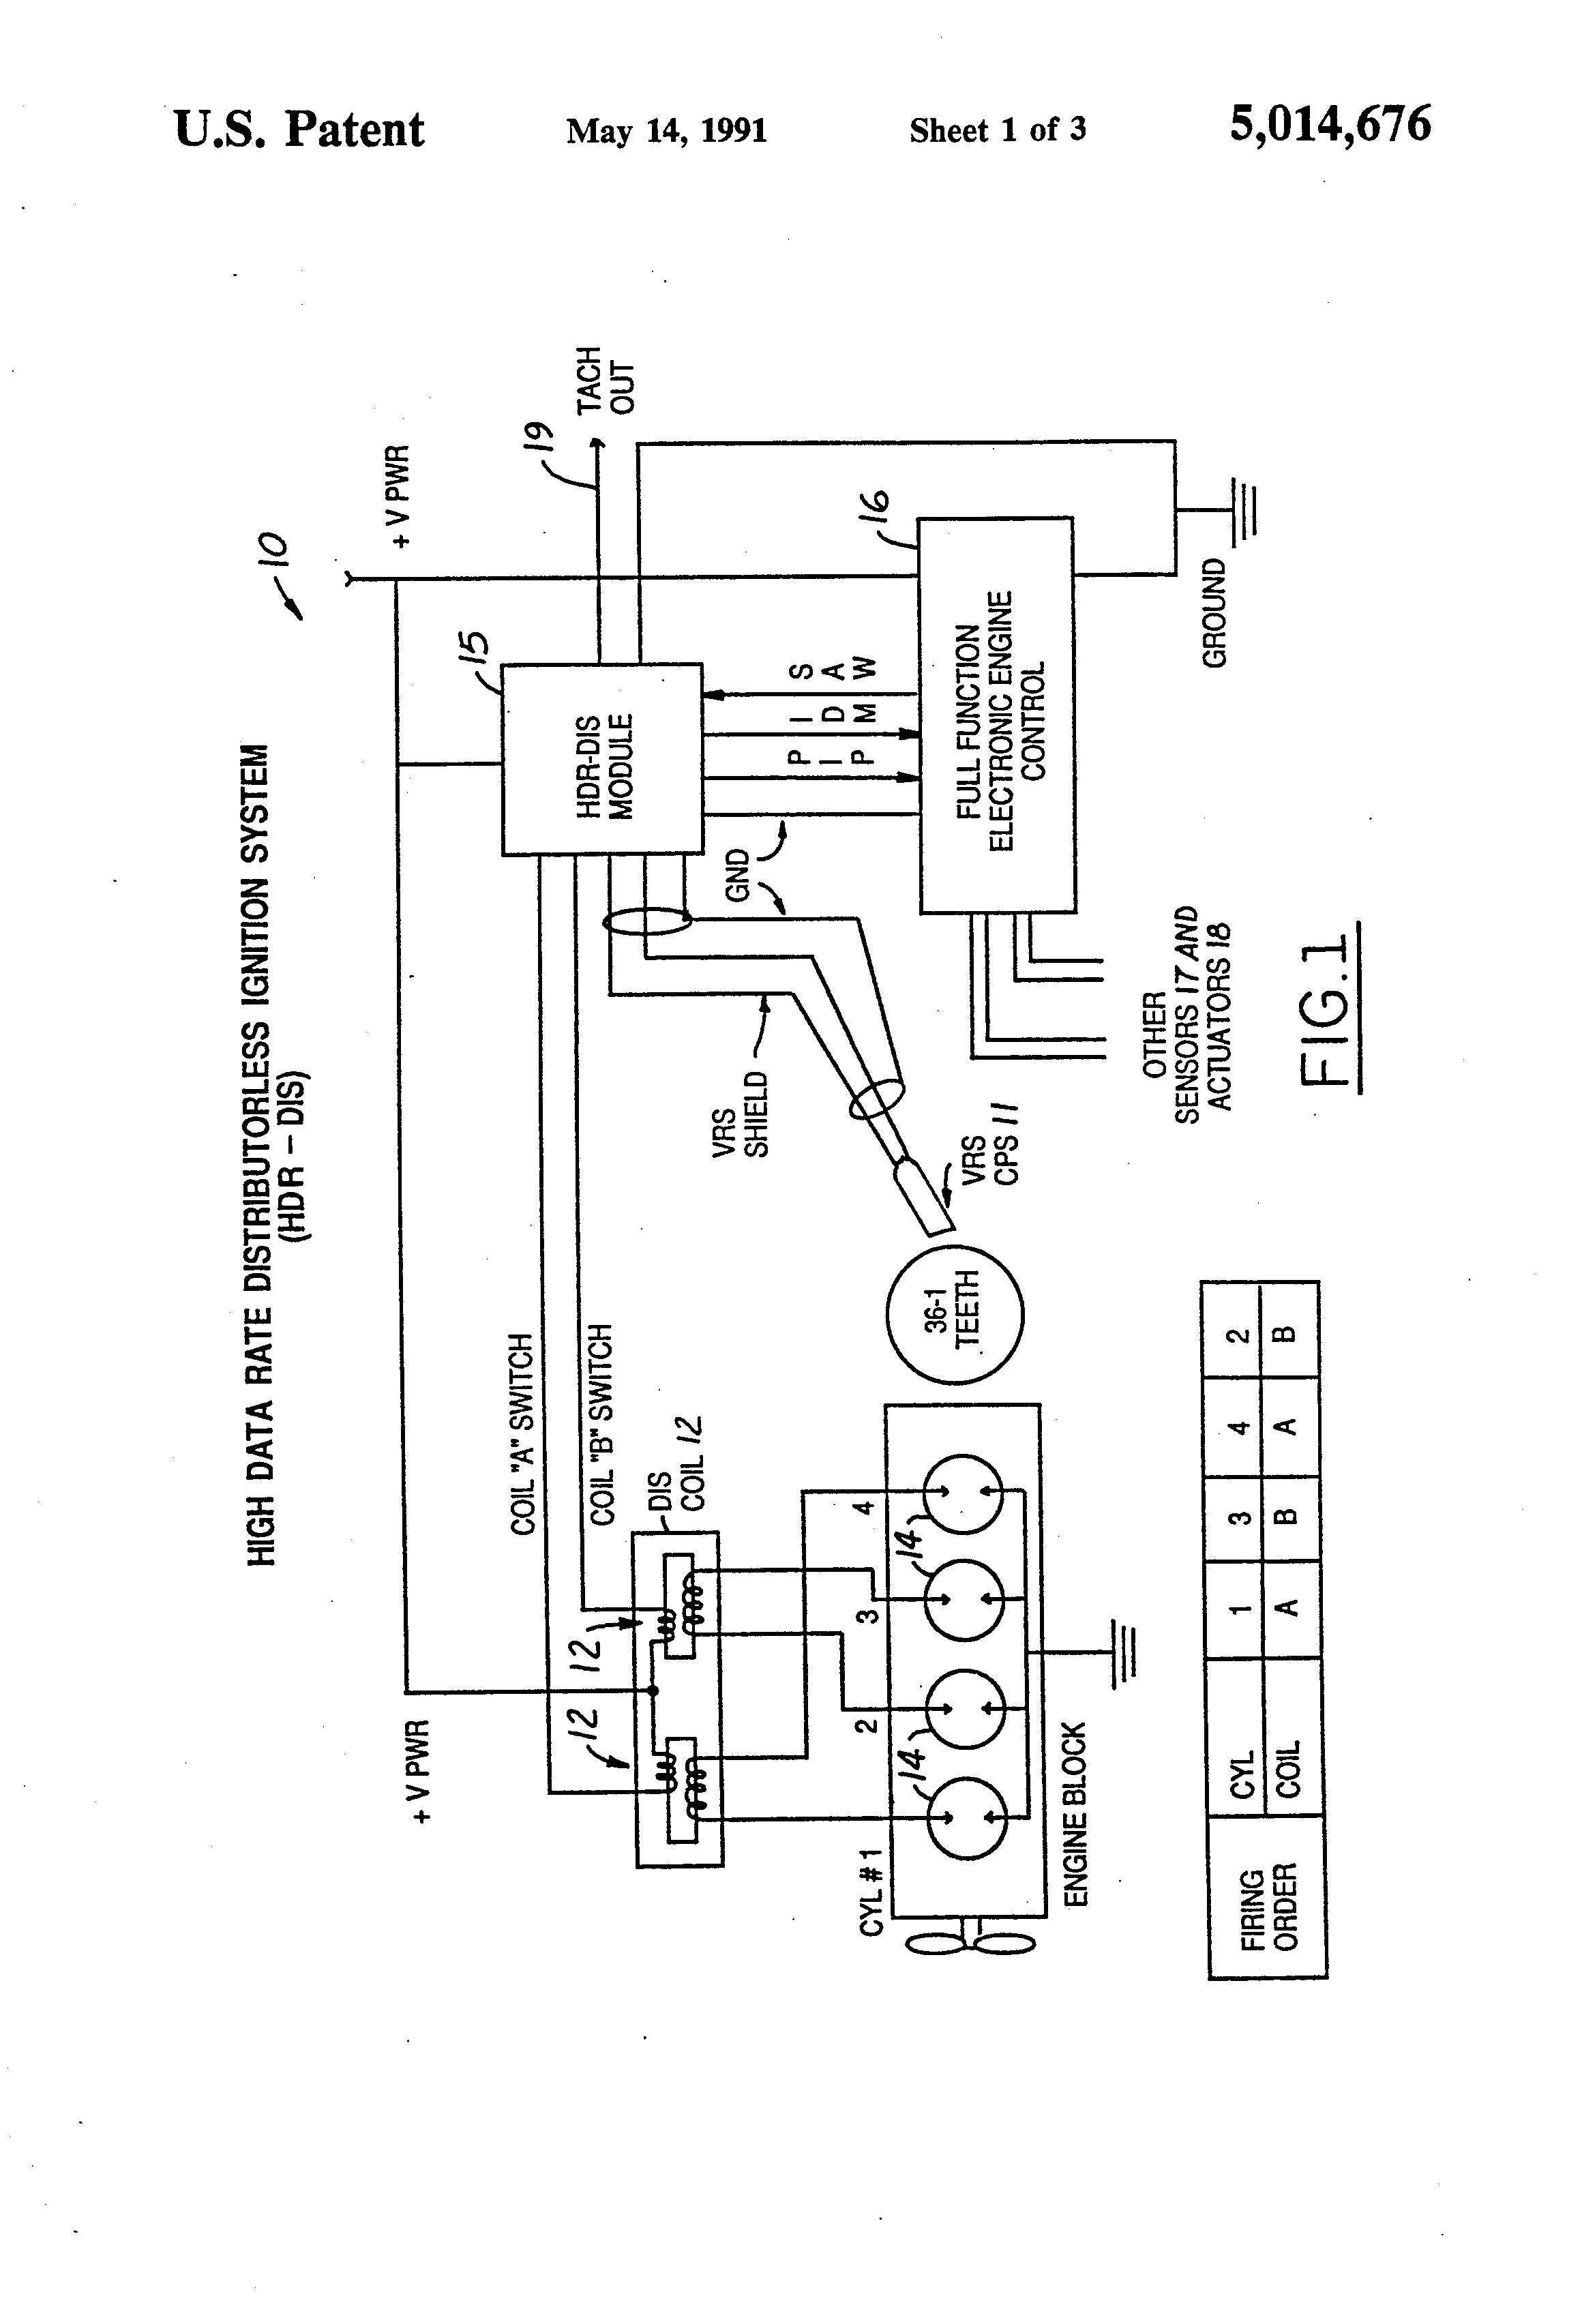 US5014676 1?resize\=665%2C977 wiring diagram dea355 microphone wiring diagrams \u2022 wiring diagram  at aneh.co